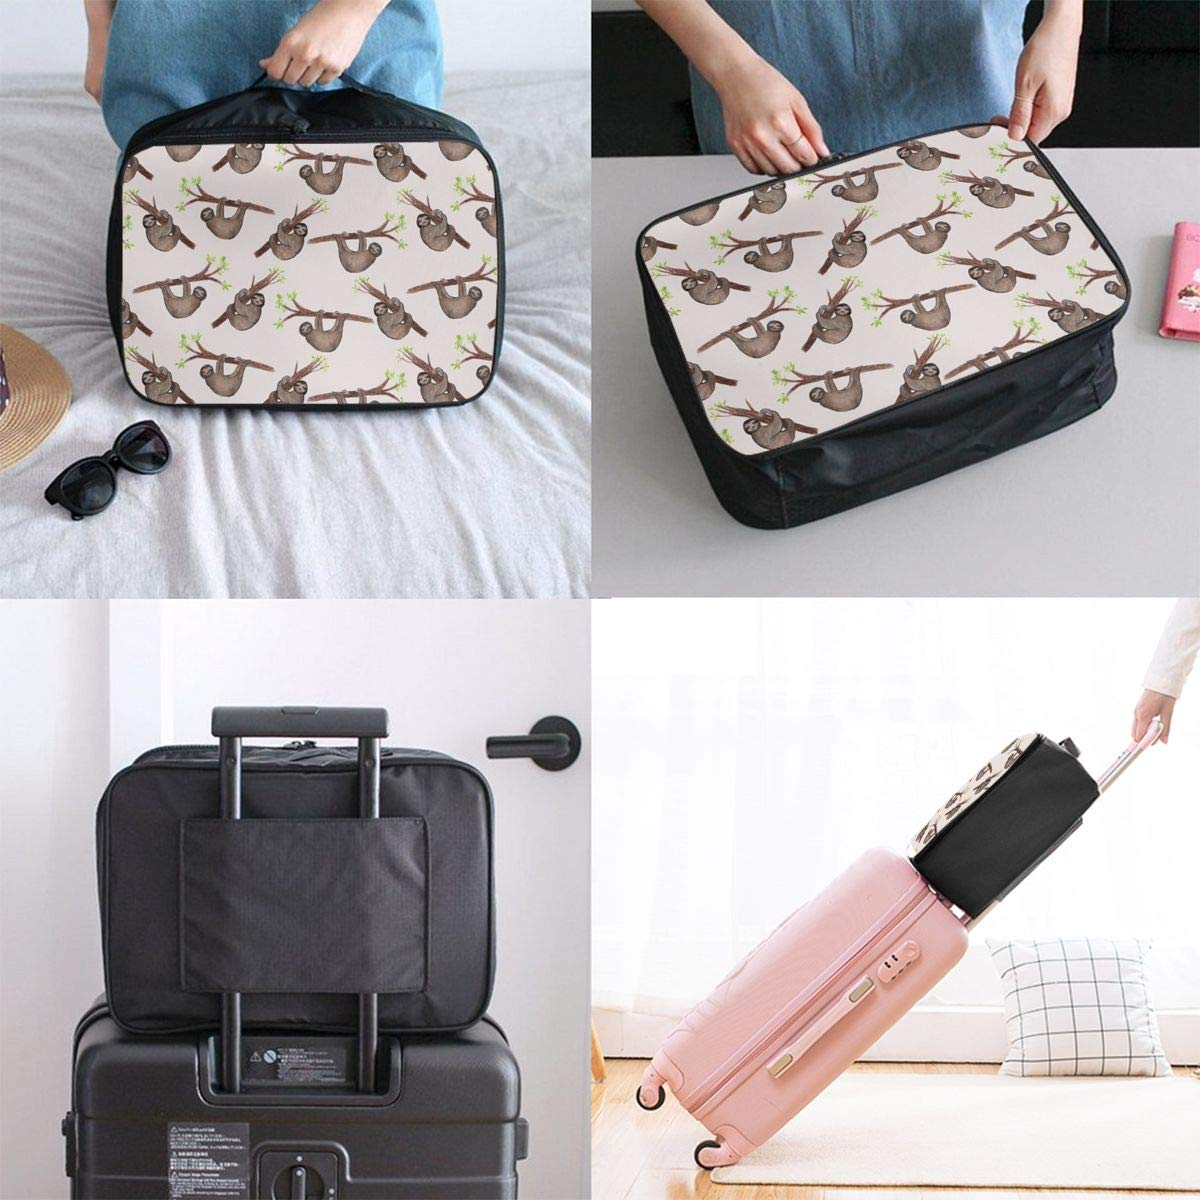 Vacation Gym Hand Bag In Trolley Handle Travel Duffle Bag Cute Sloth Pattern Weekender Bag Water Repellent Foldable Nylon Luggage Duffel Bag For Sports